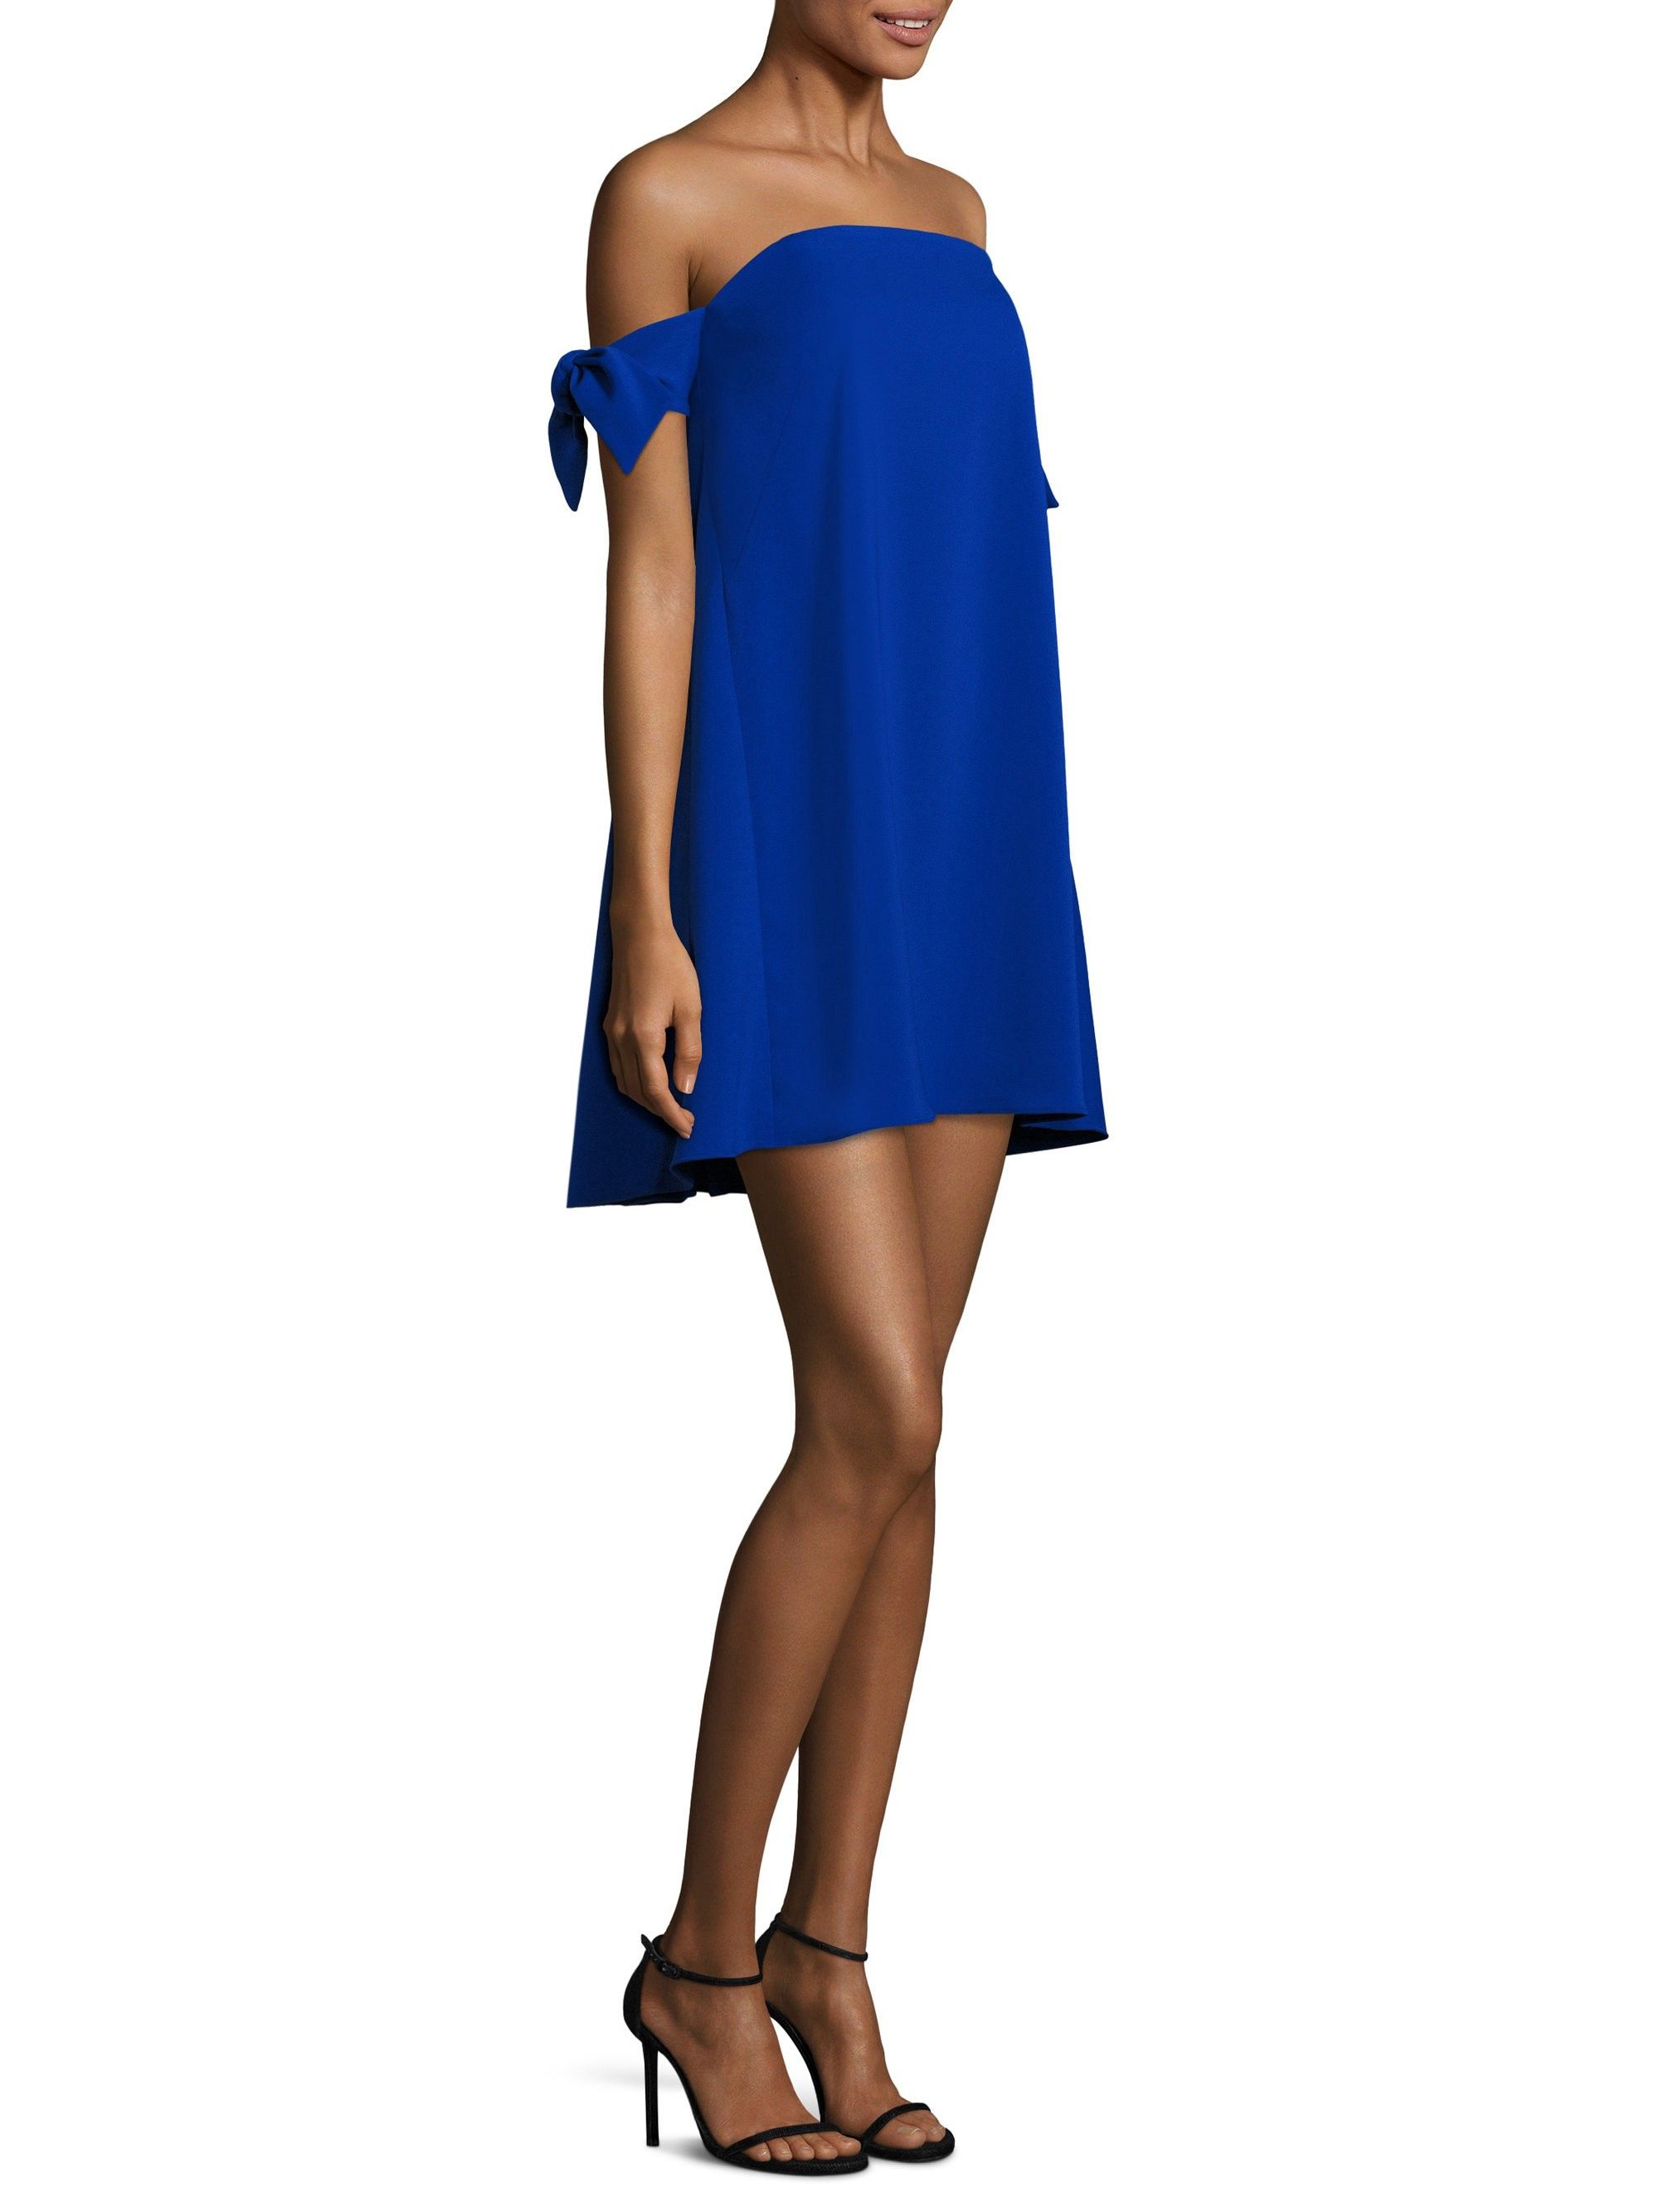 ad8f1b54d3b81 Jade Italian Cady Off-The-Shoulder Dress by Milly | Products | Jade ...